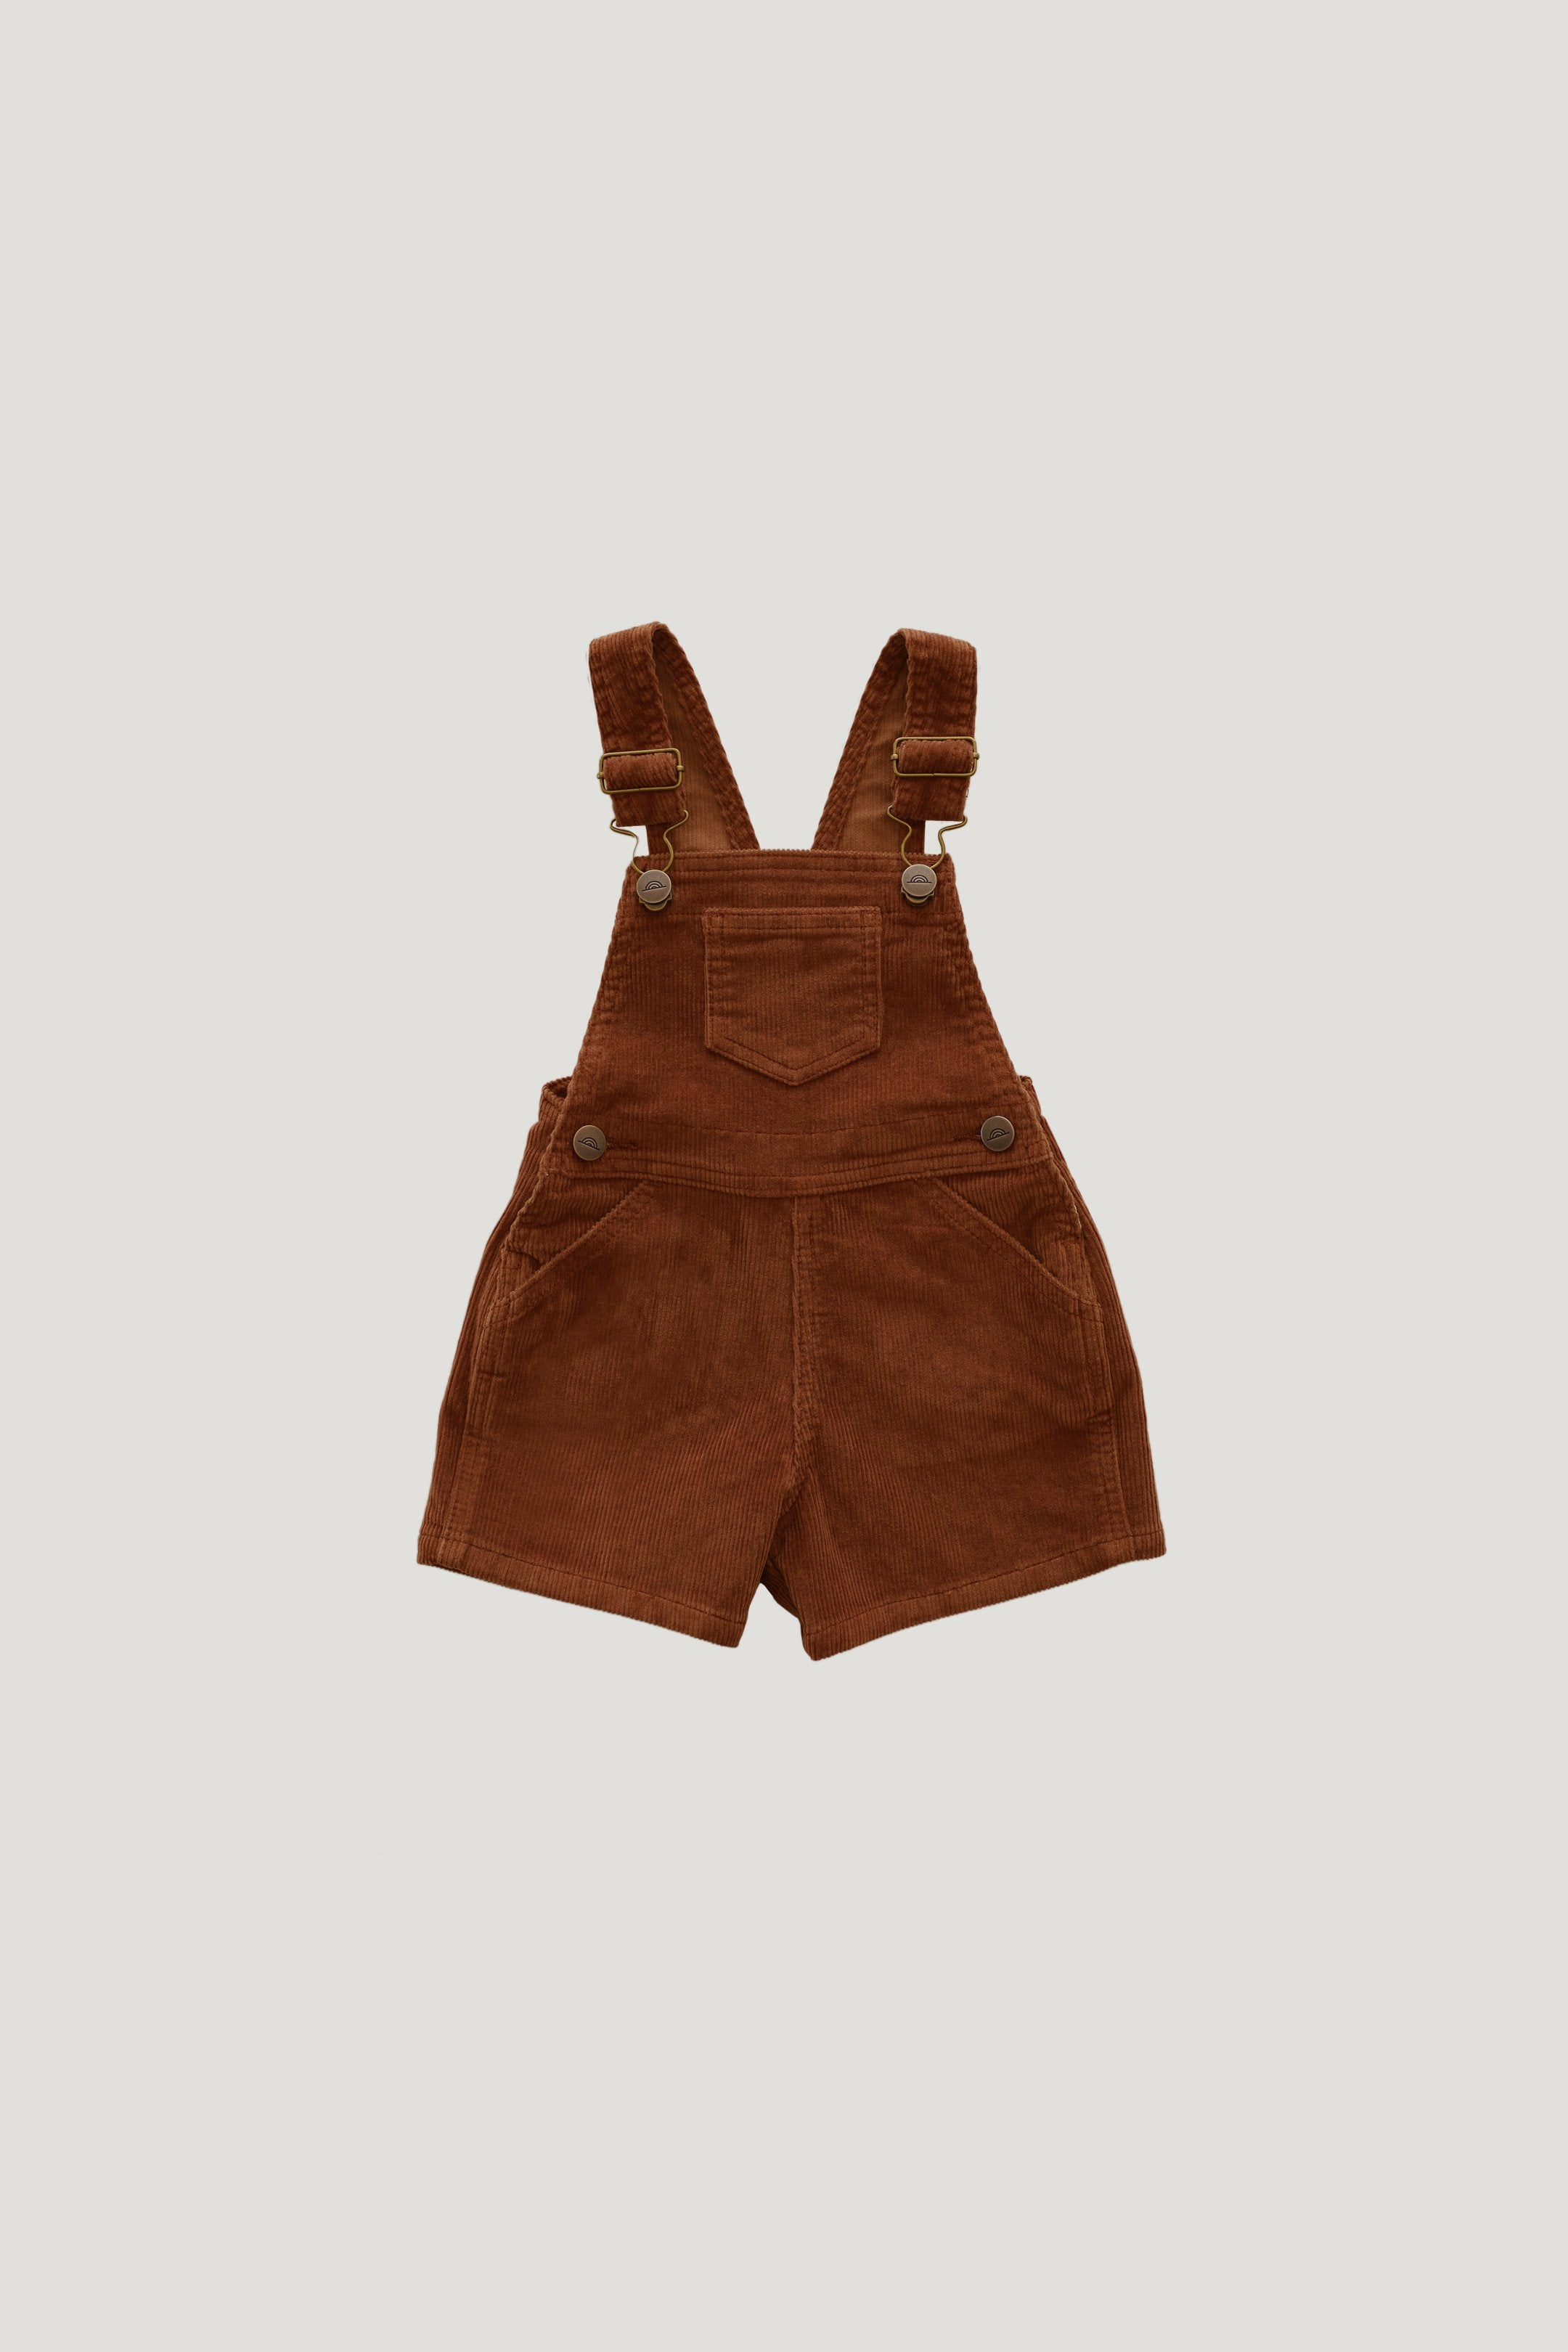 Reign Short Overall - Gingerbread